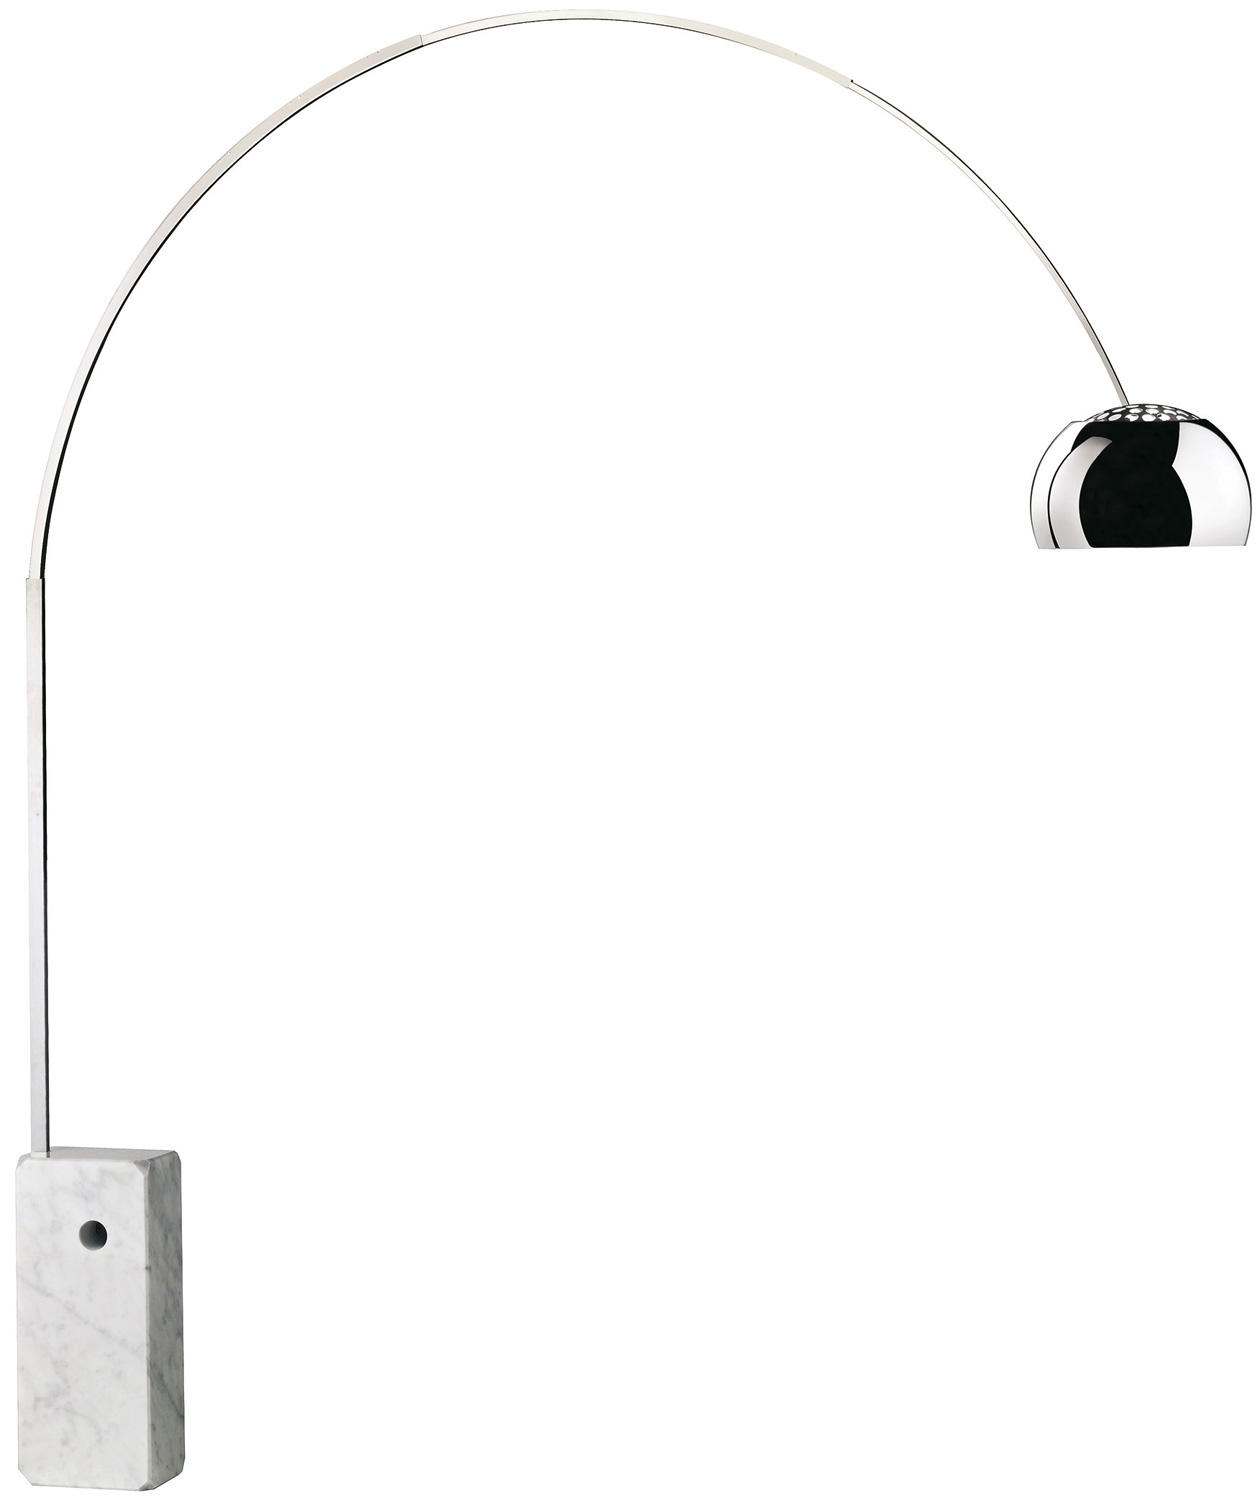 Lampadaire Arco Flos Arco Floor Lamp By Flos Lighting | Fu030000